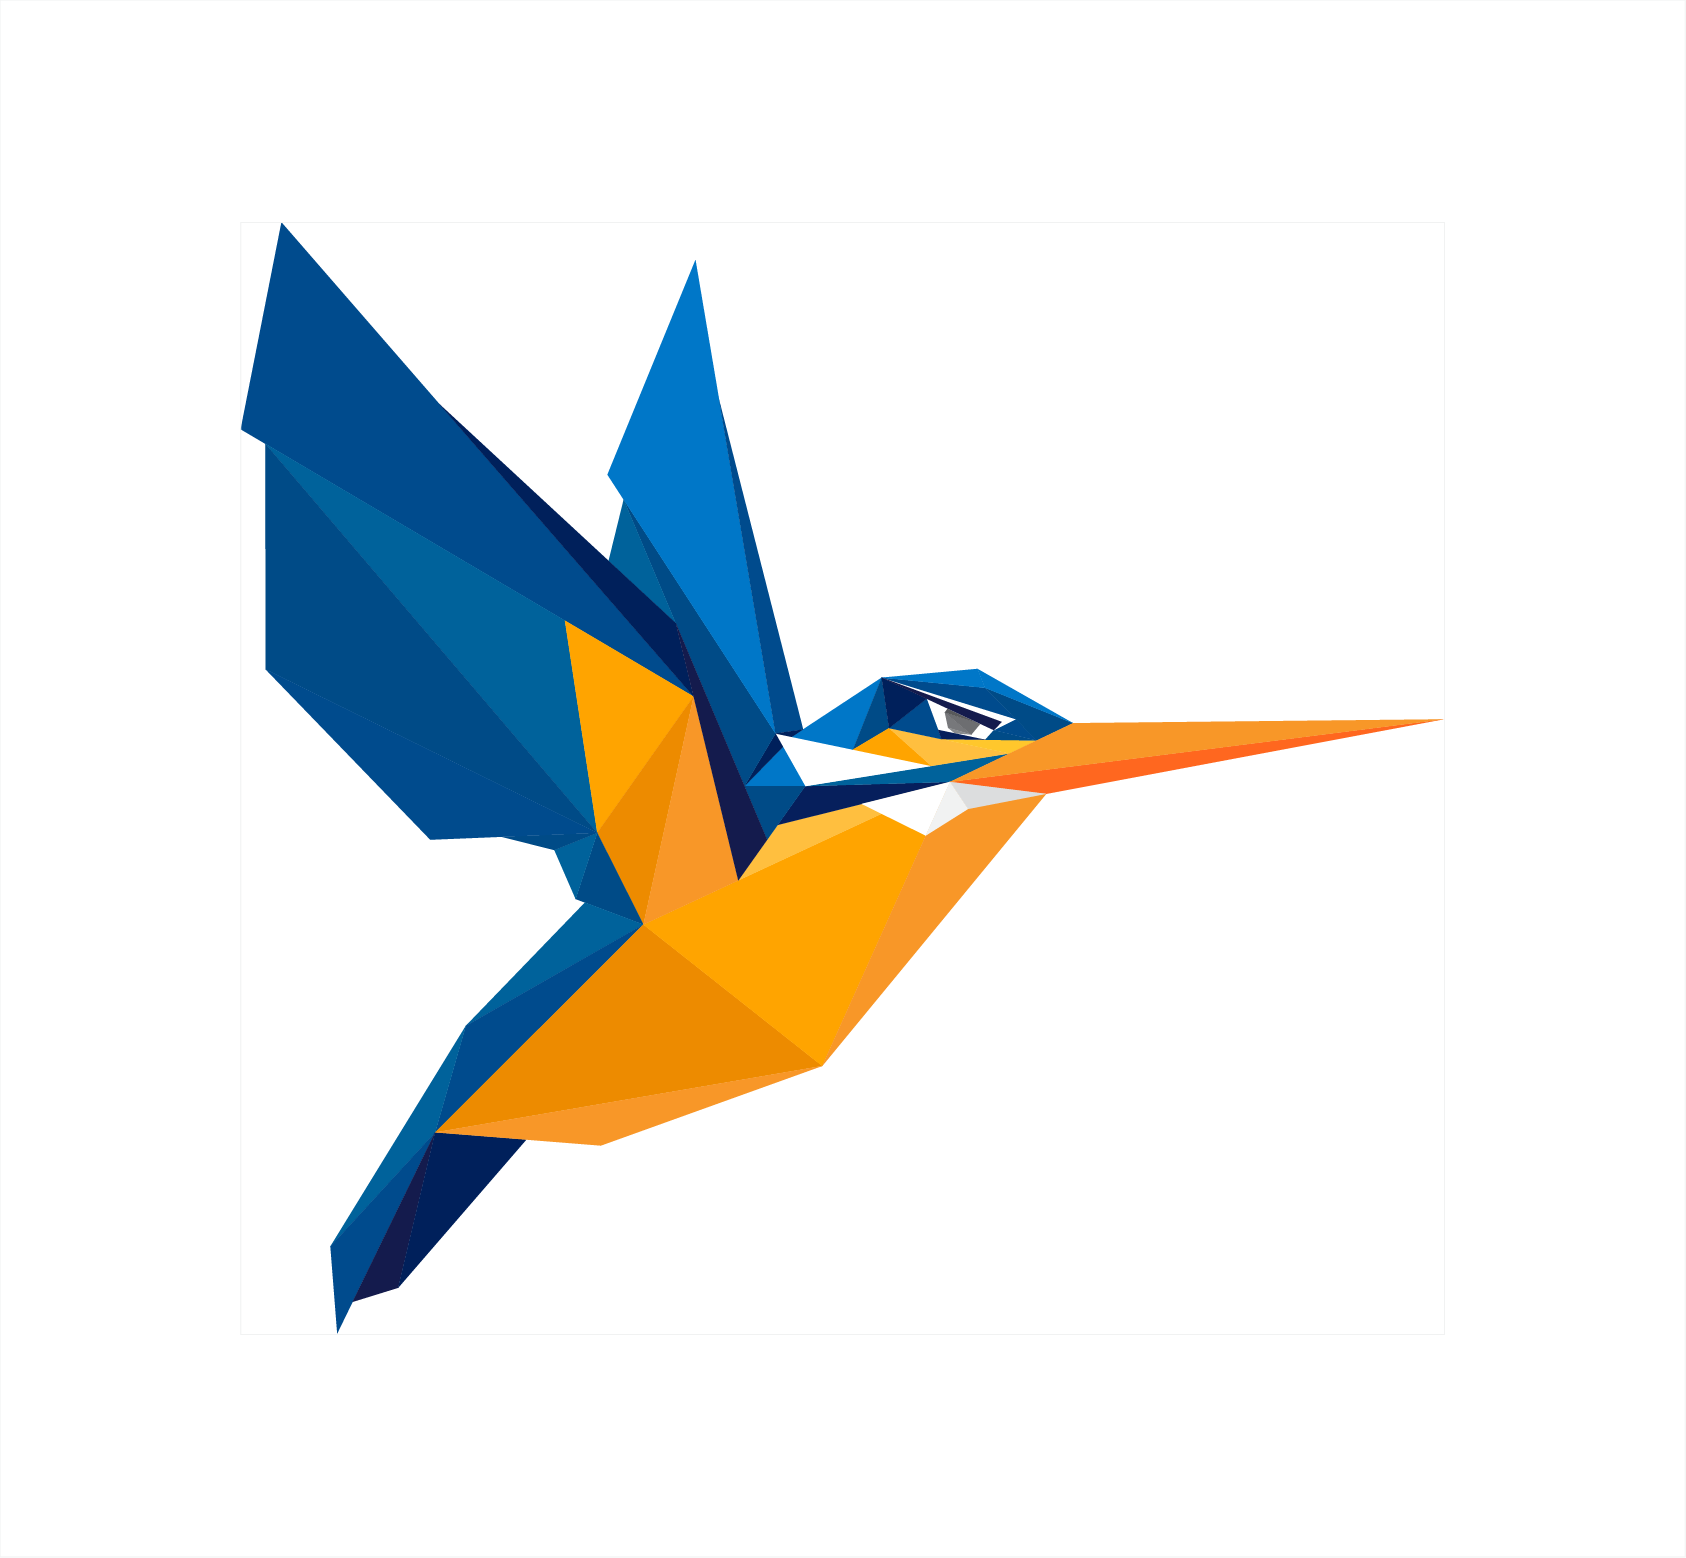 The Kingfisher mascot was then ratified by the student body on April 7, 2016, after three rounds of voting.